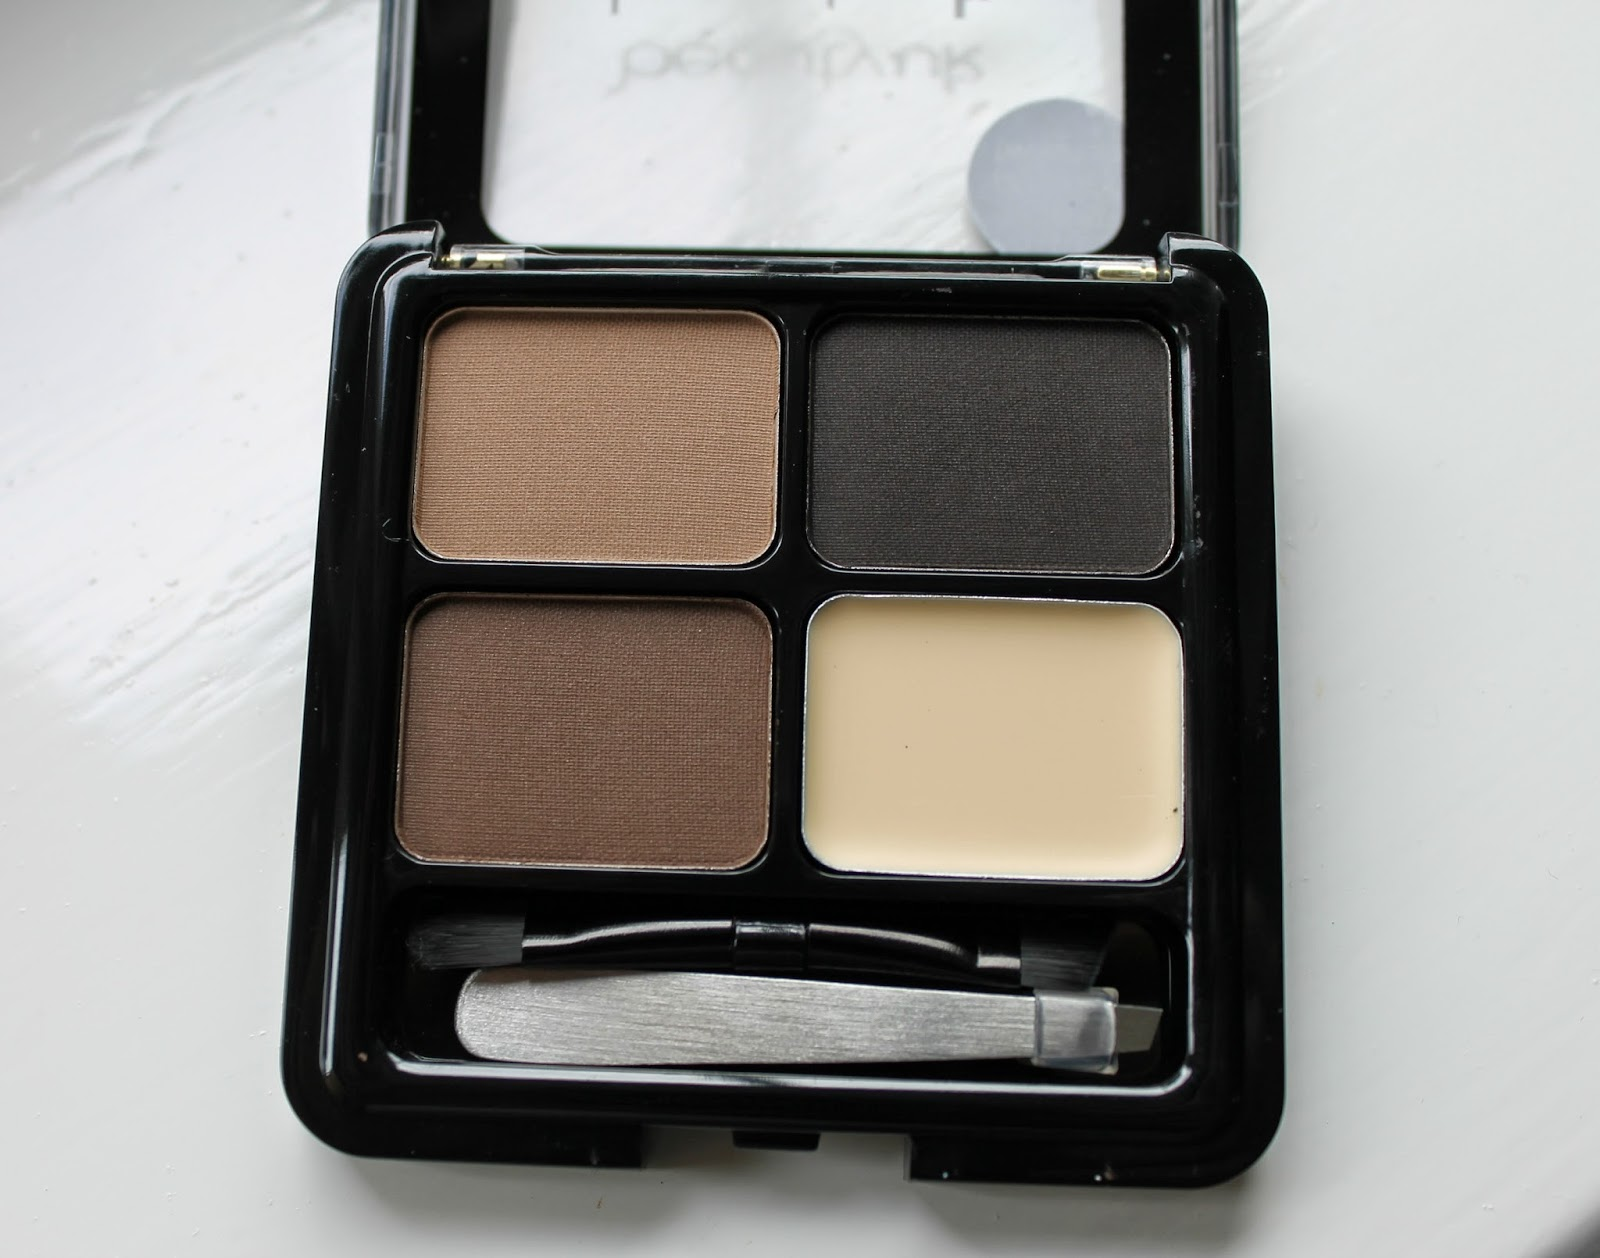 Love Me Beauty Box June 2014 BeautyUK Eyebrow Kit